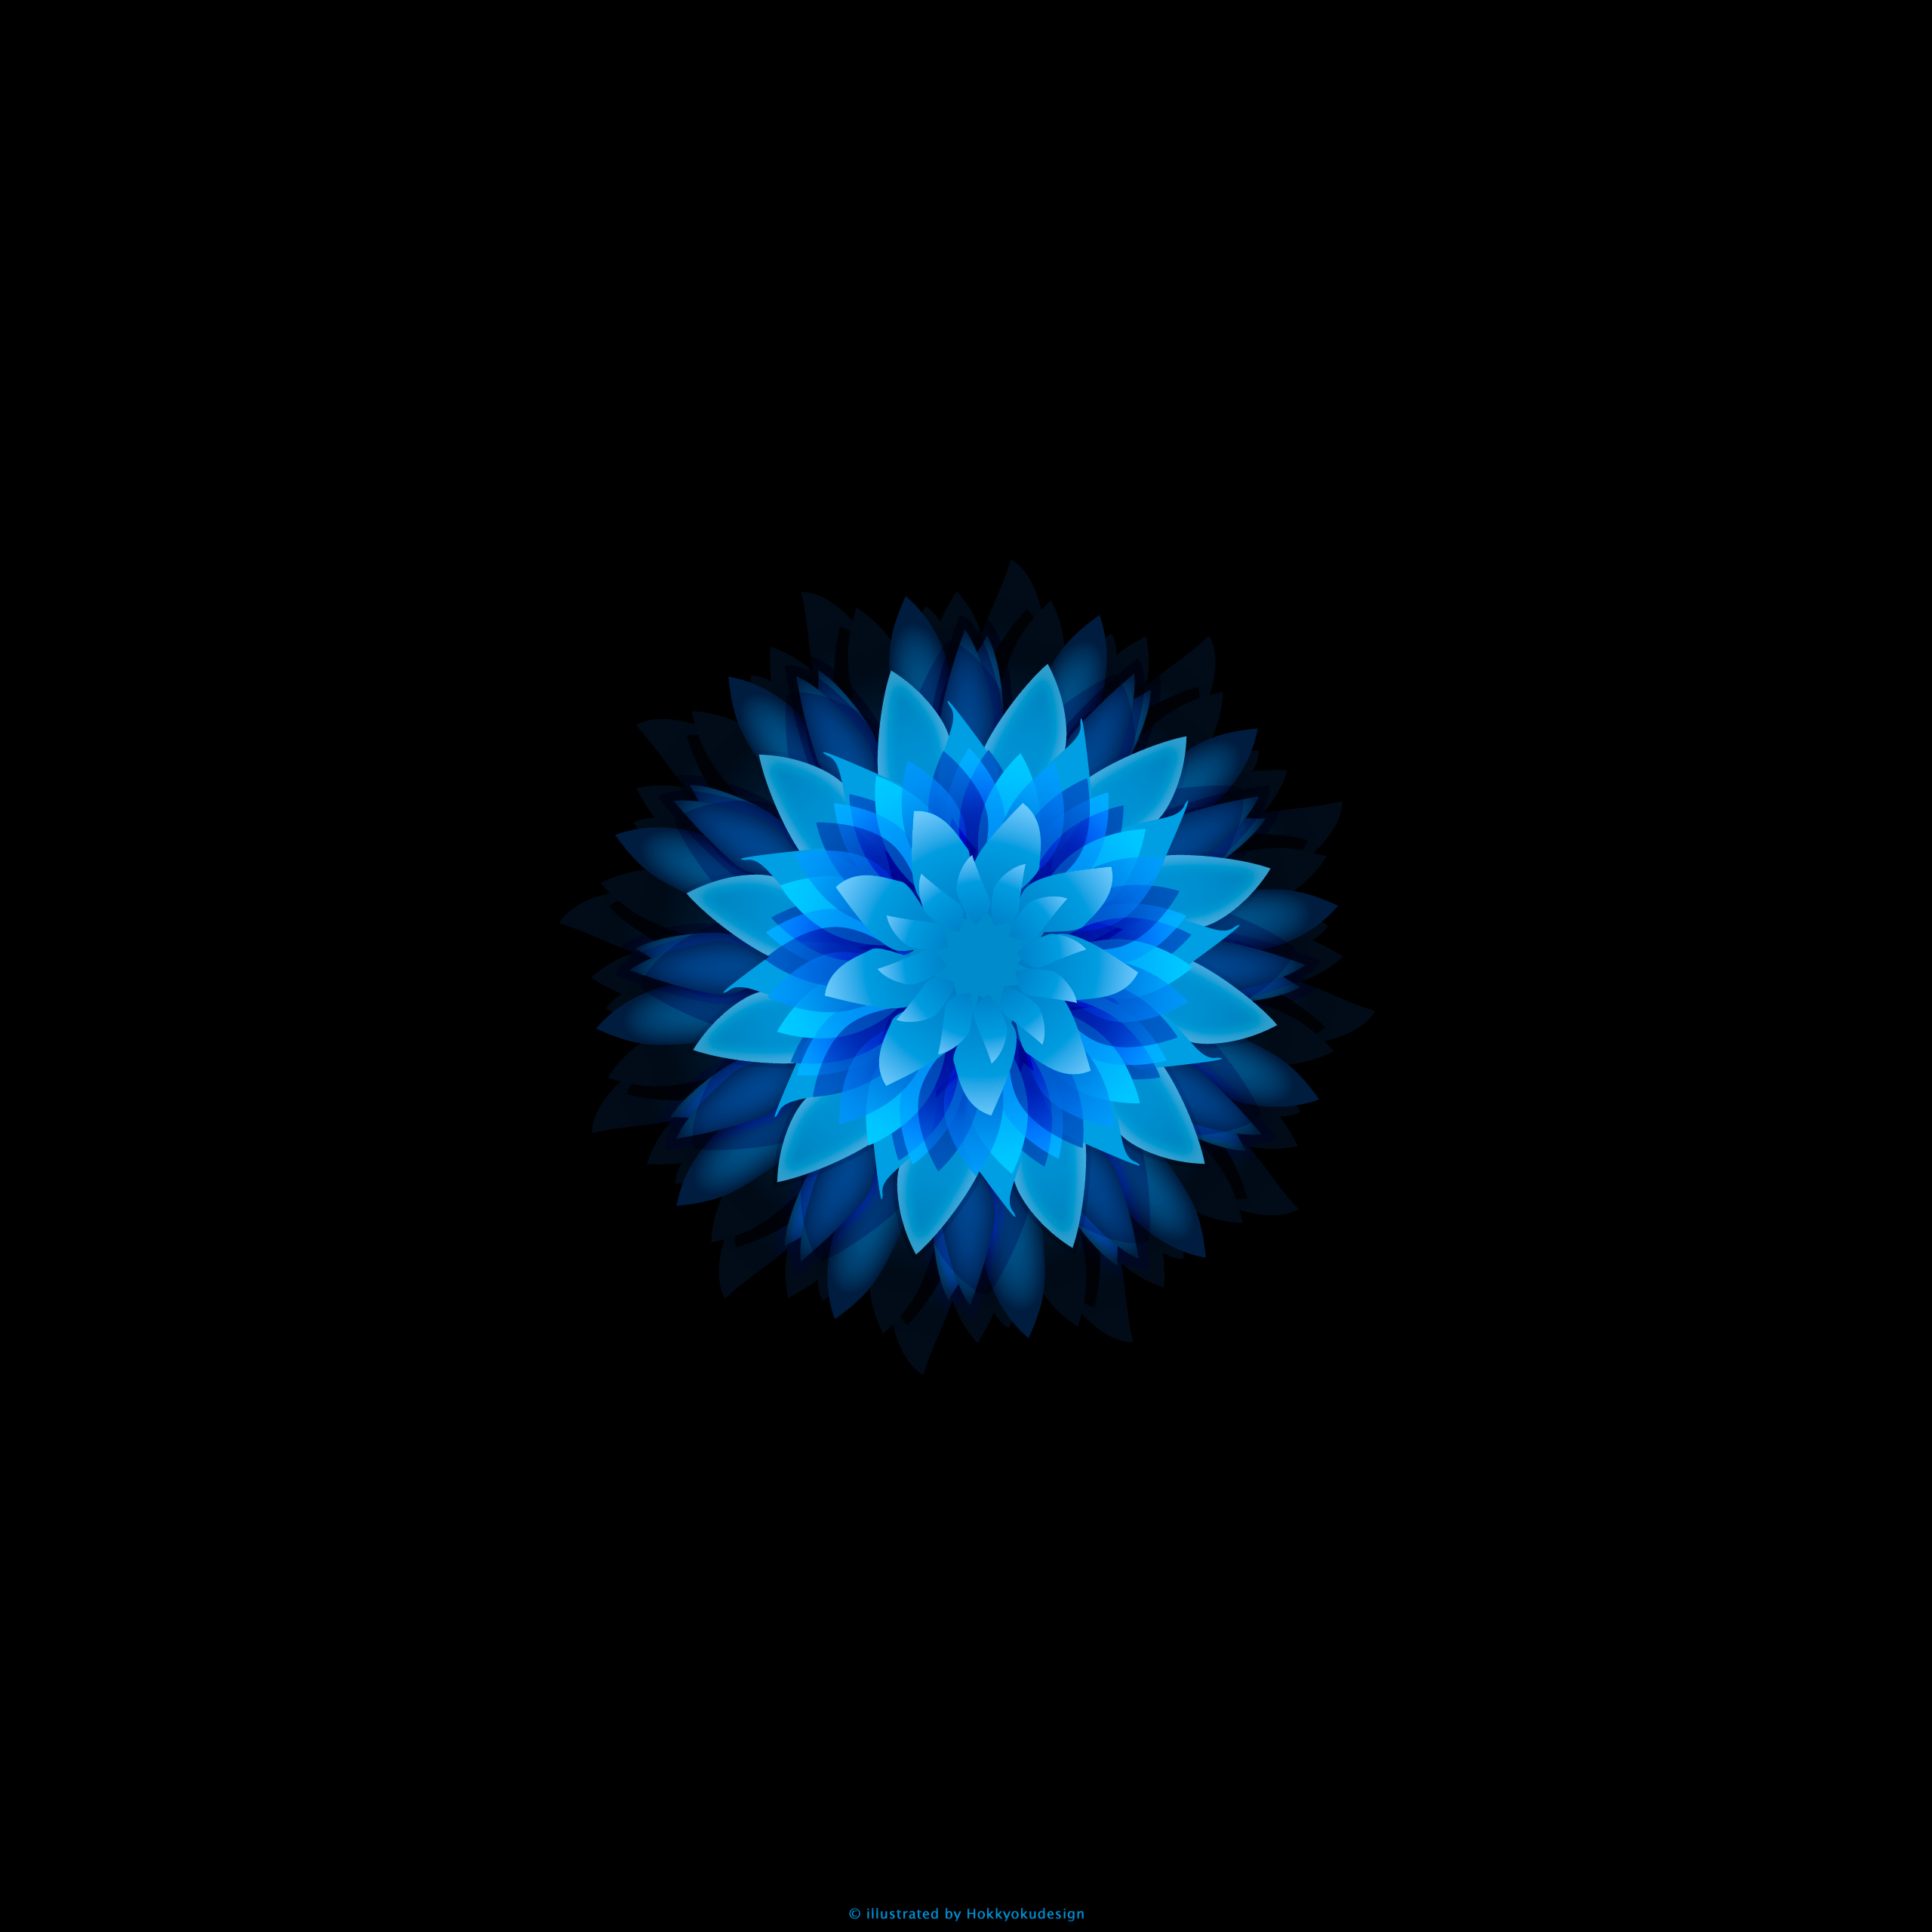 Ios壁紙 Iphone6 Plus Blue Flower Ios Iphone Flower Wallpaper For All Iphone Ipad